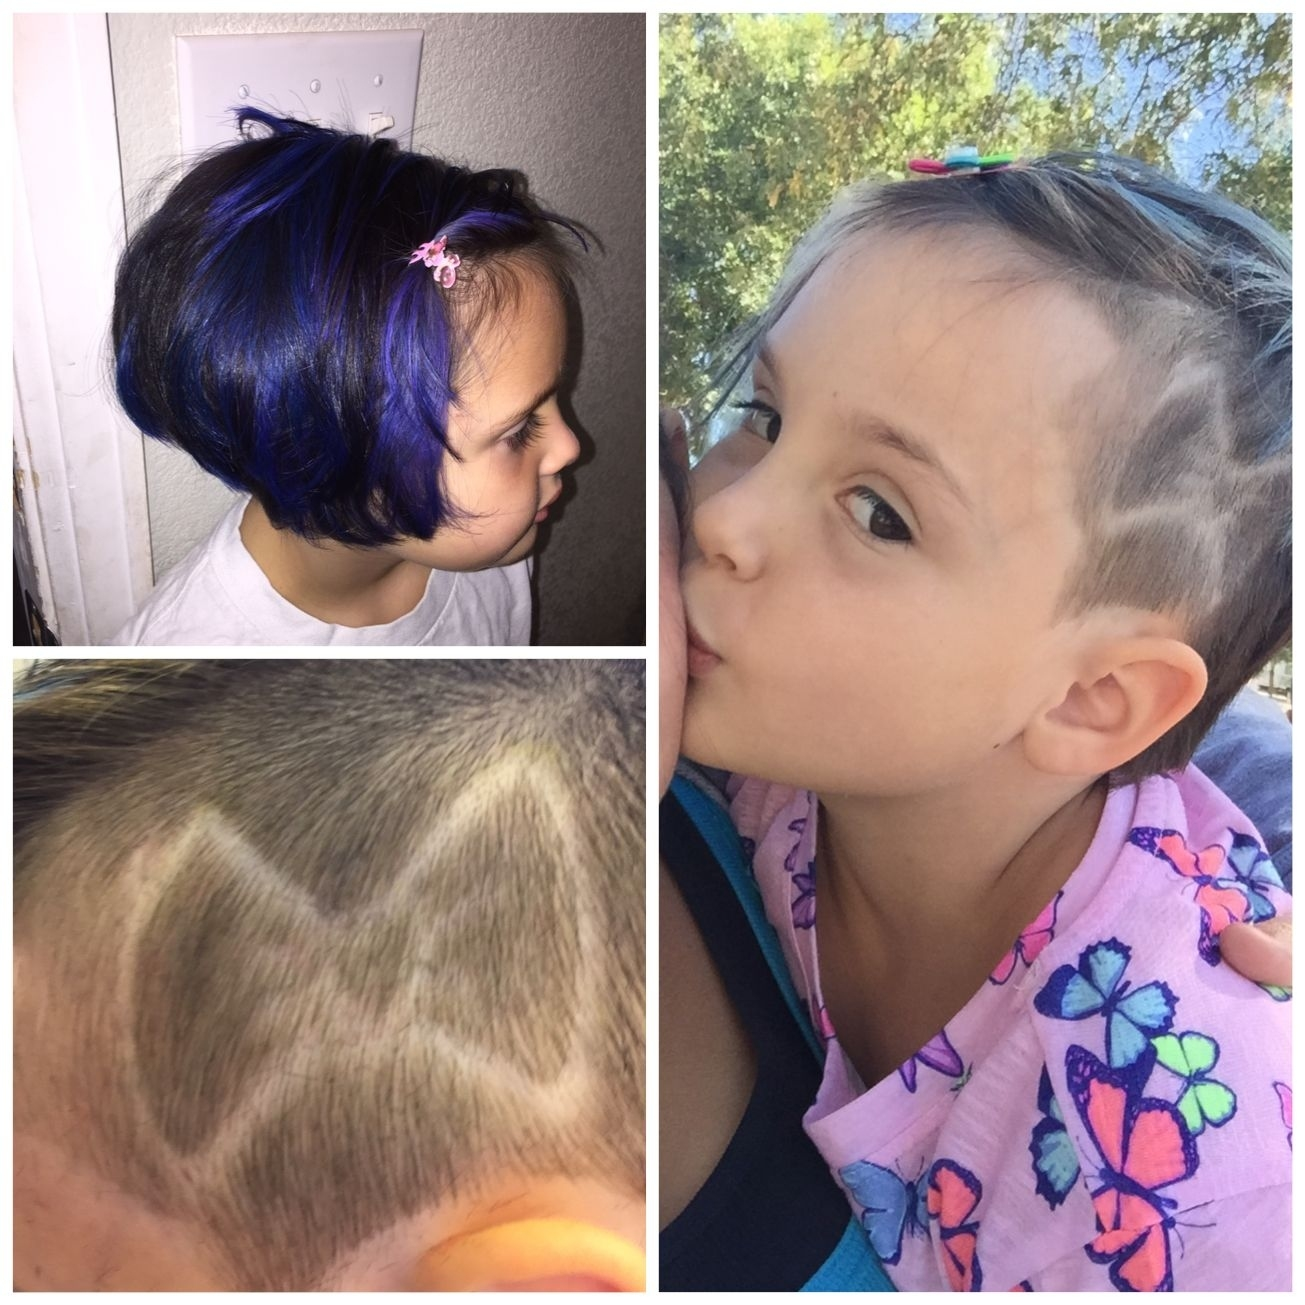 Blue Hair And Shaved On The Side. Shaved Design For Little Girls for Little Girl Shaved Hair